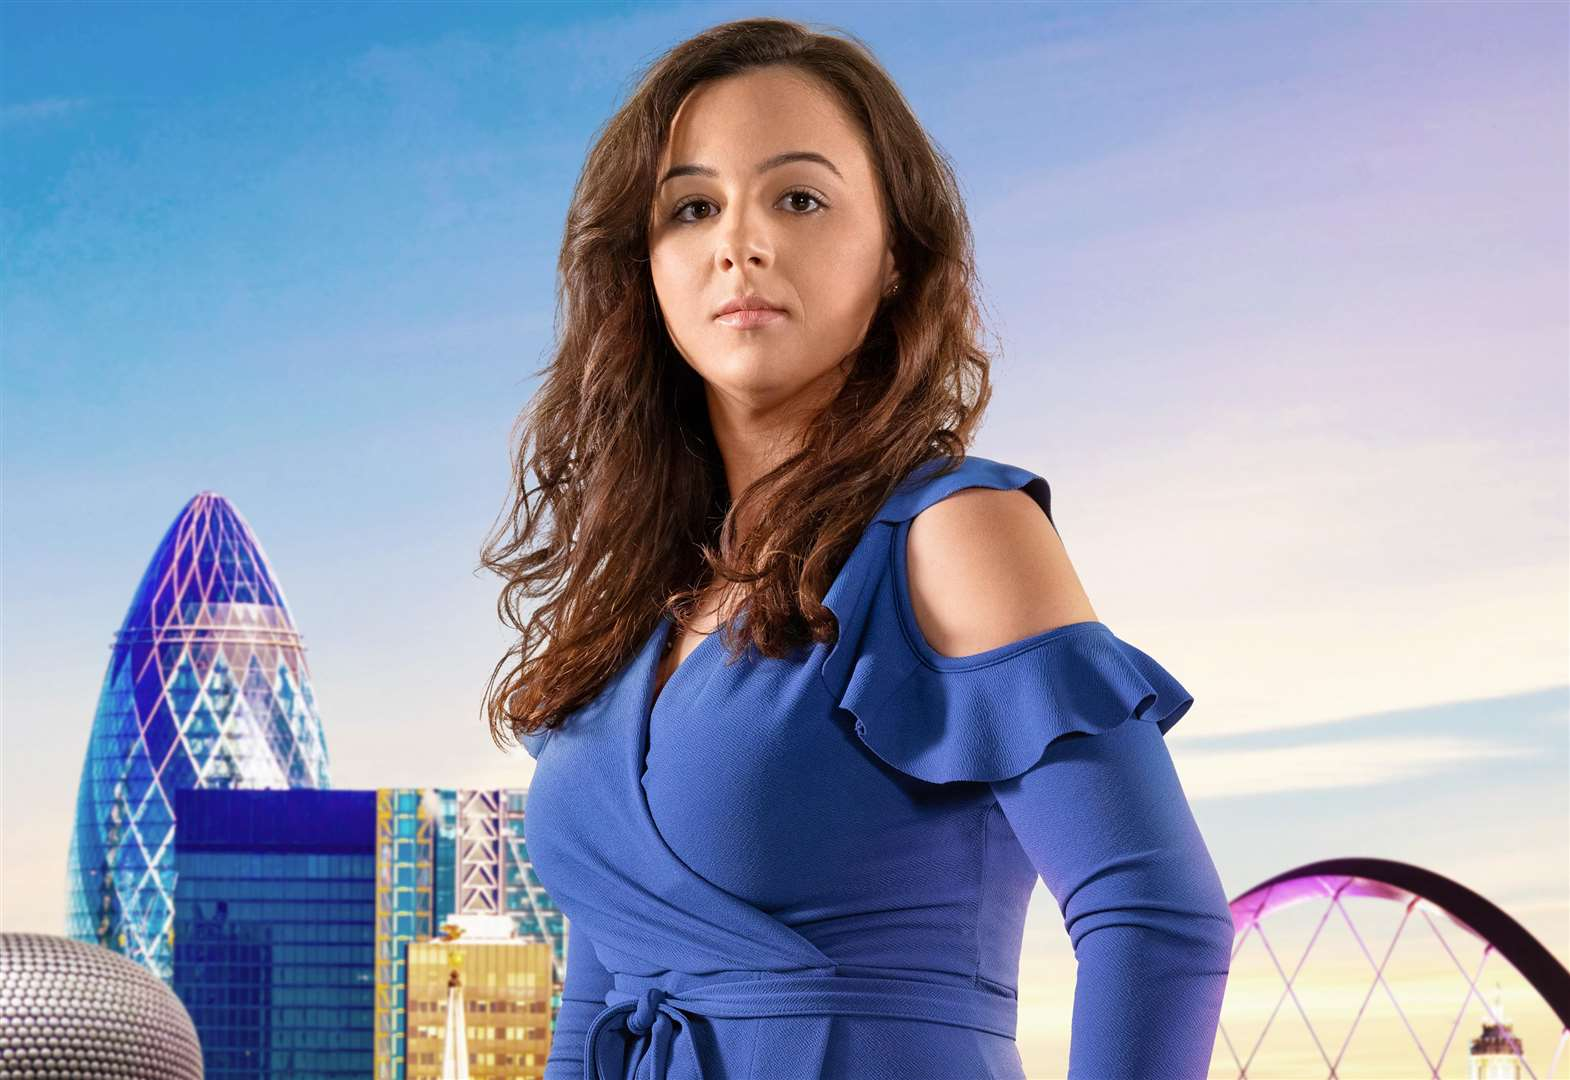 Stamford's Khadija enjoys the sweet taste of success on The Apprentice